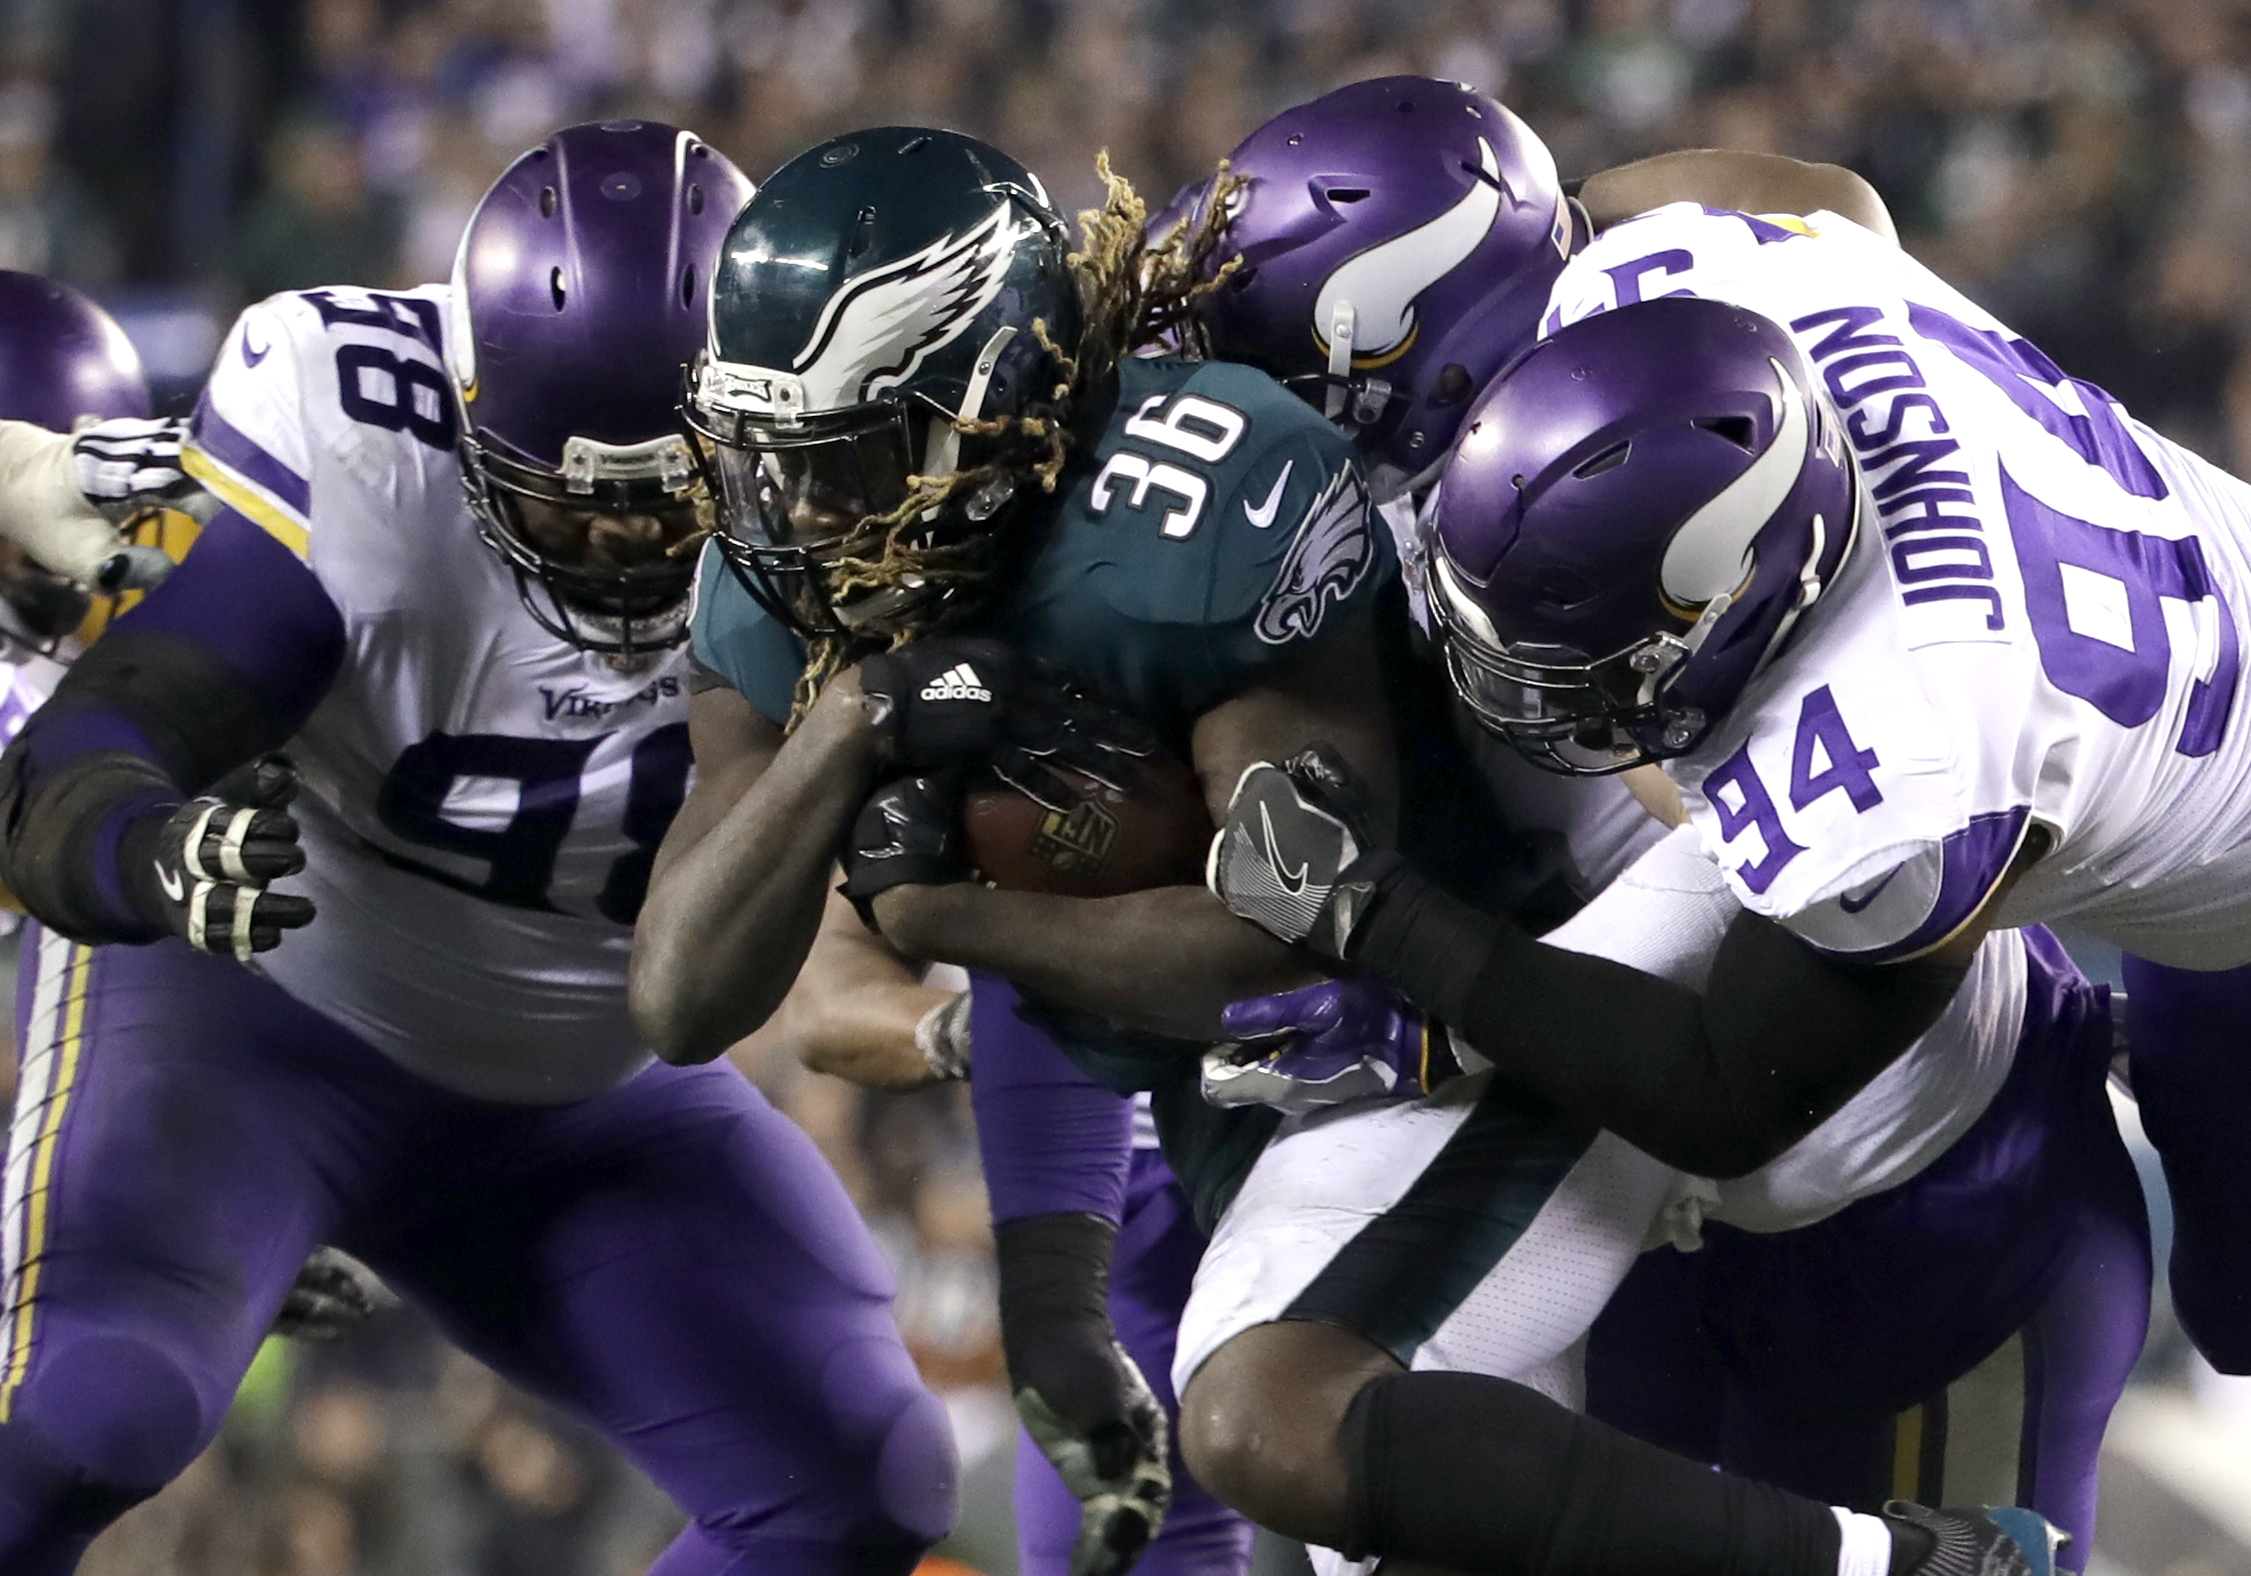 <div class='meta'><div class='origin-logo' data-origin='AP'></div><span class='caption-text' data-credit='AP Photo/Matt Rourke'>Philadelphia Eagles' Jay Ajayi runs during the second half of the NFL football NFC championship game against the Minnesota Vikings Sunday, Jan. 21, 2018, in Philadelphia.</span></div>